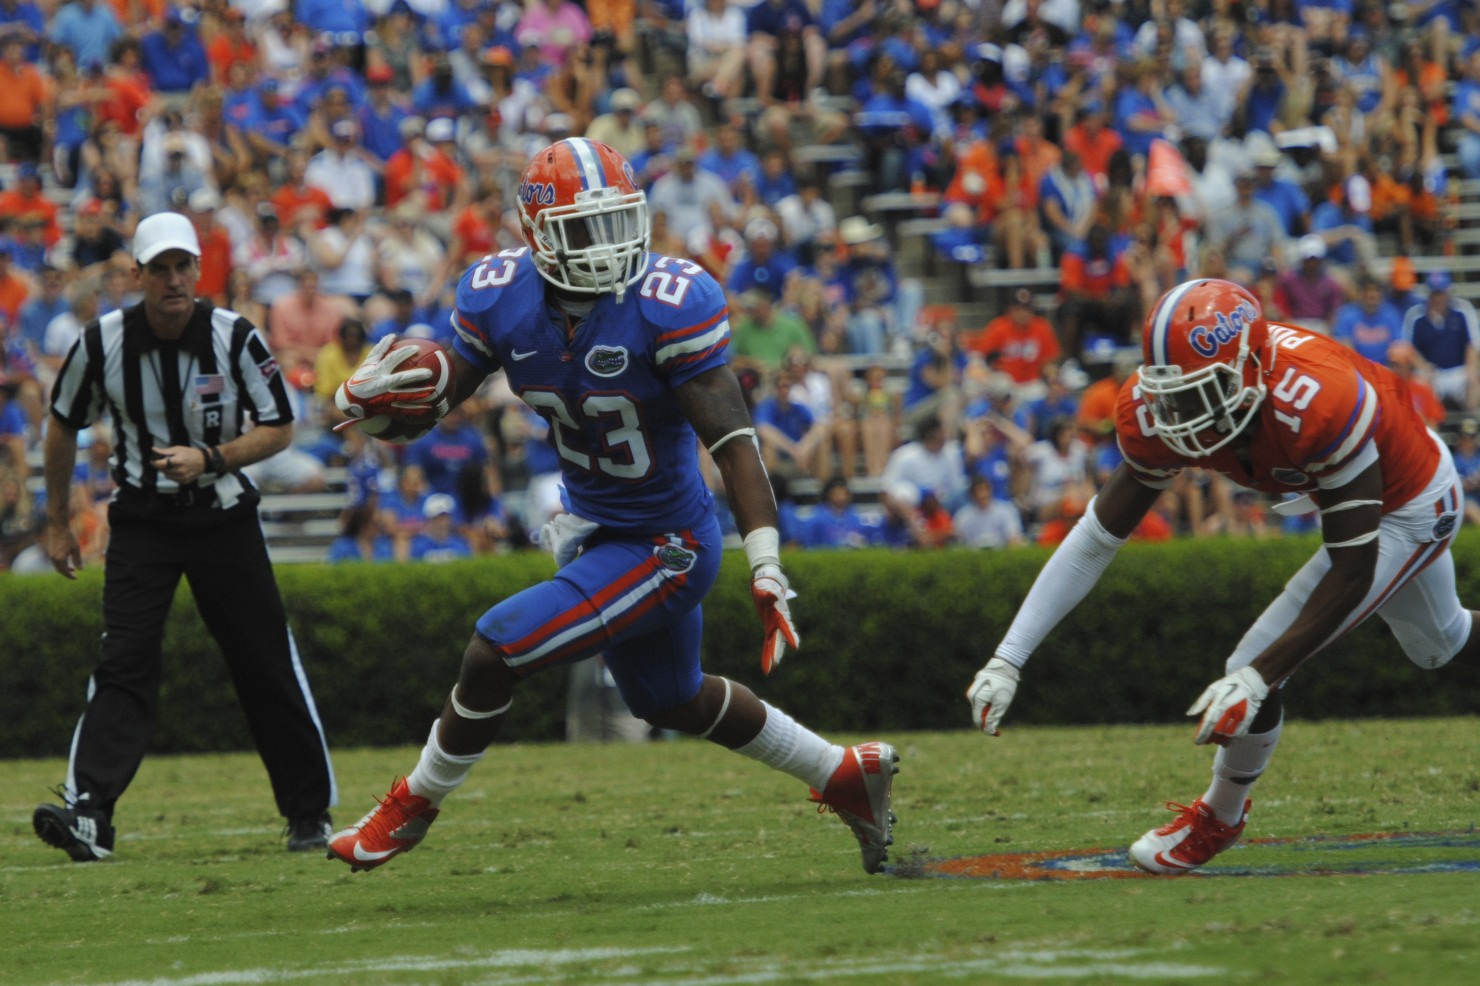 Senior running back Mike Gillislee